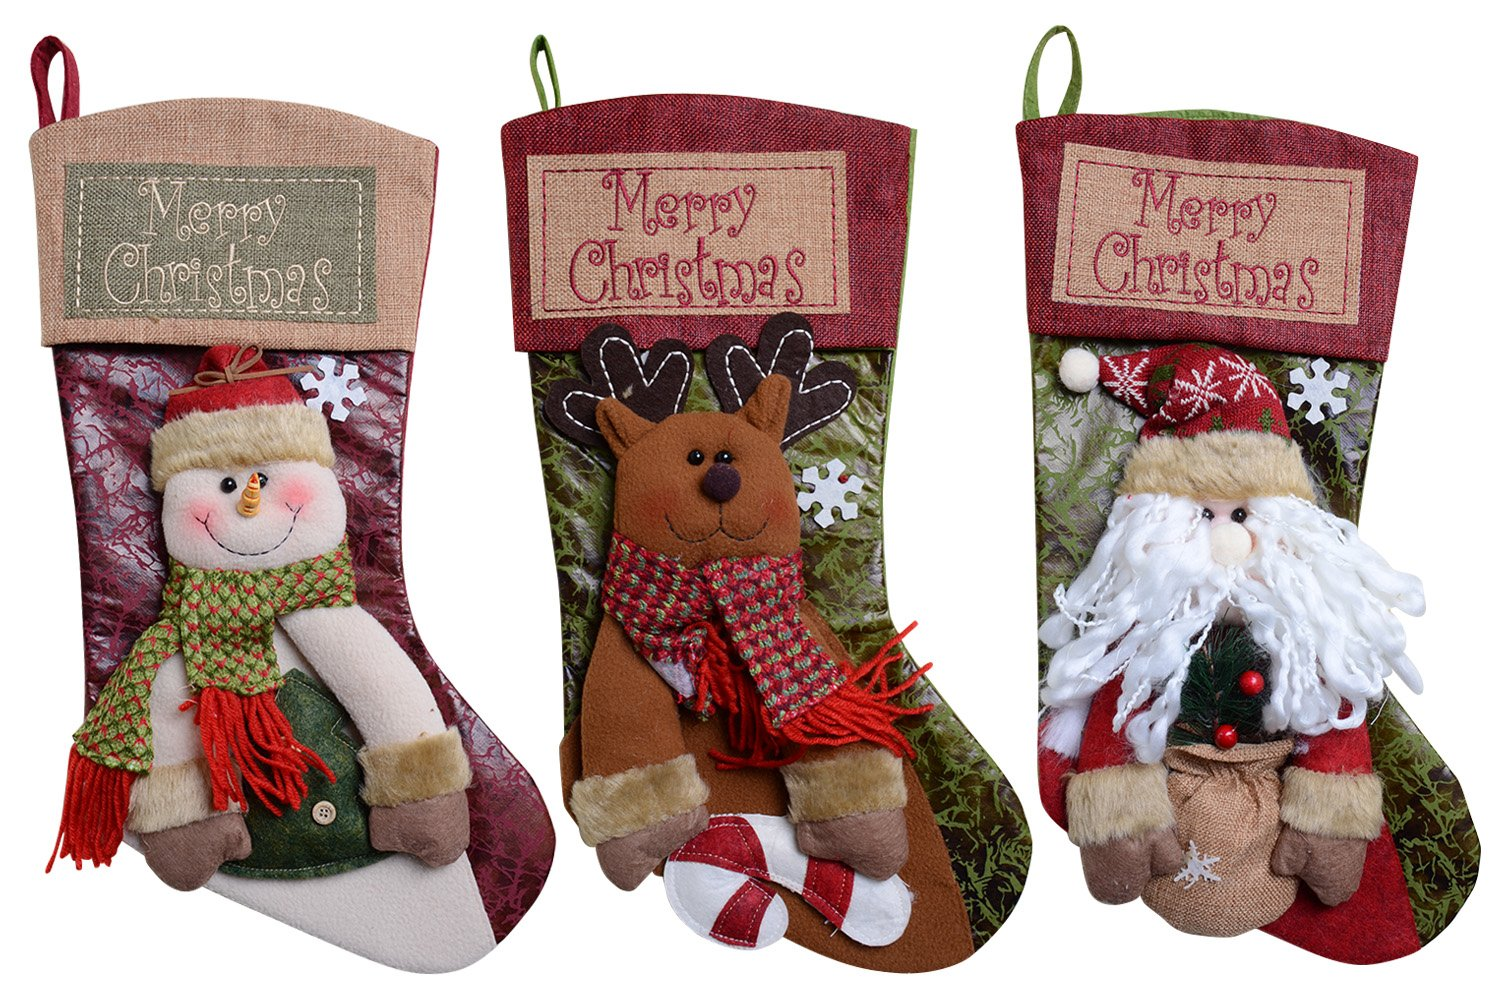 qbsm classic cute deer christmas stockings decorations stocking holders gift bag xmas character 3d plush linen